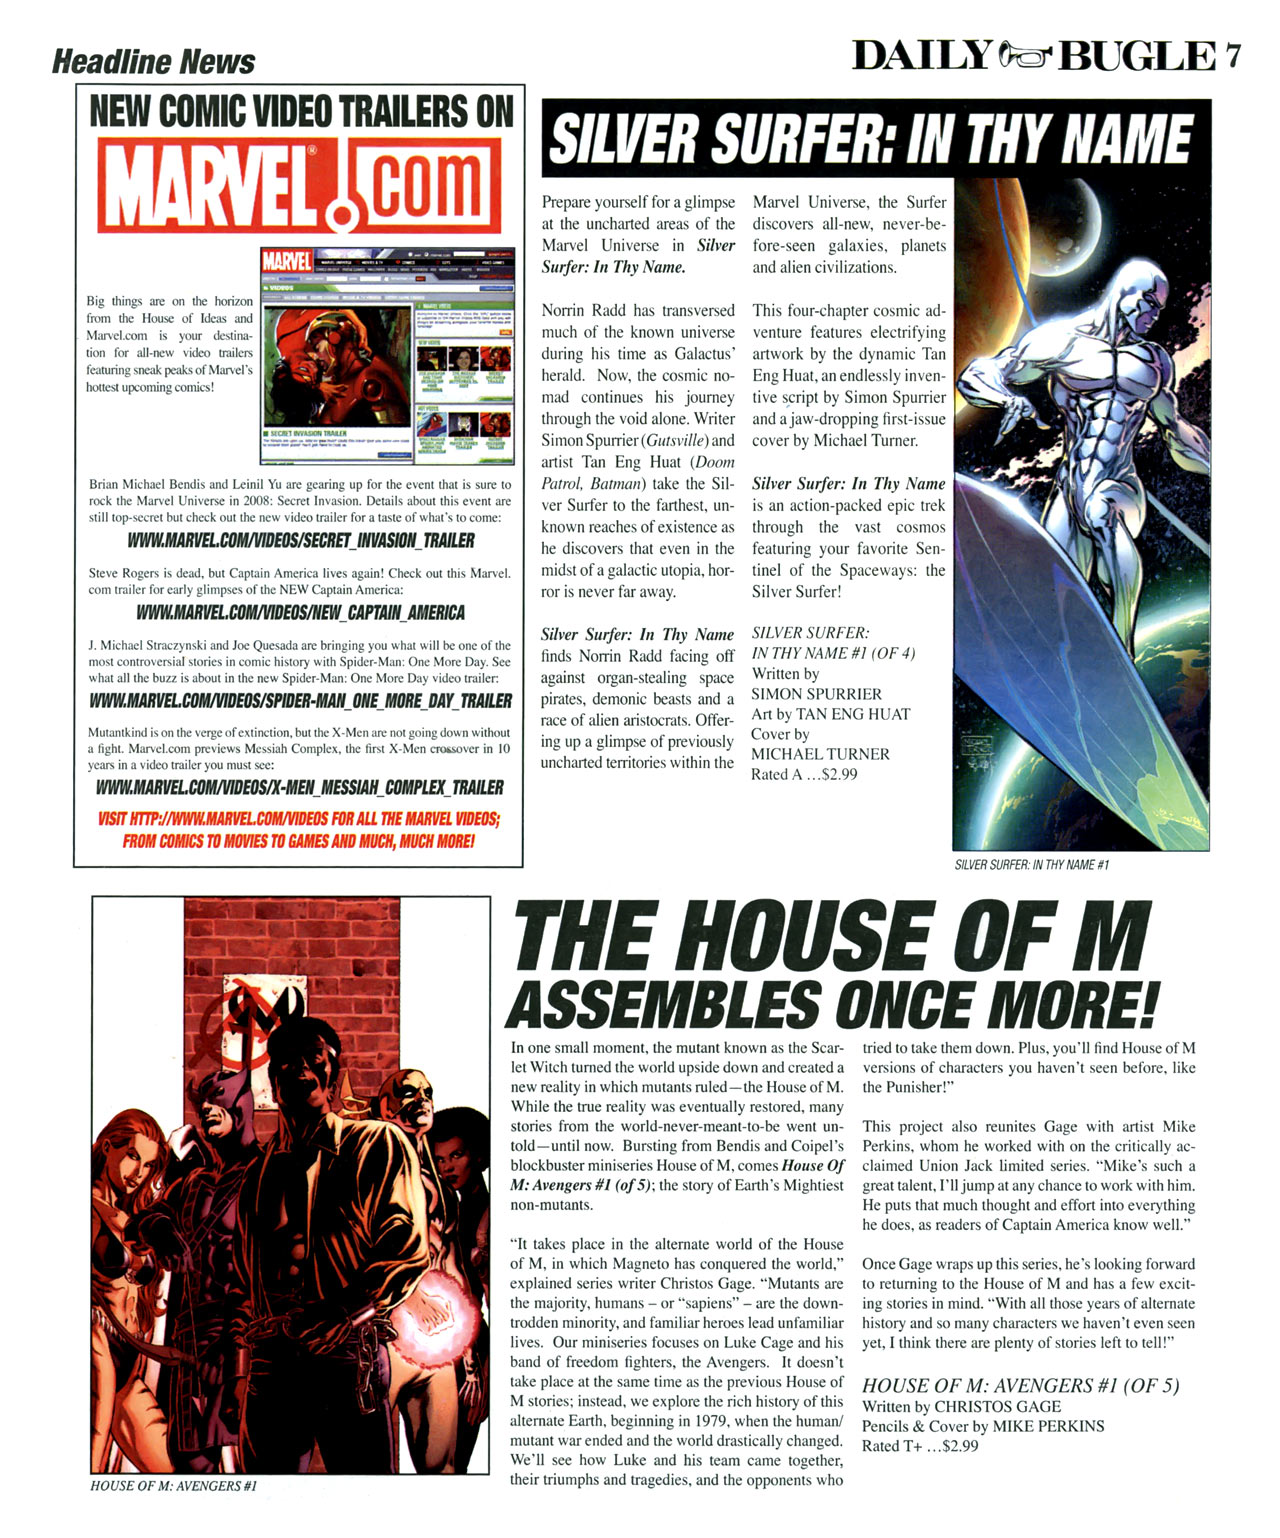 Read online Daily Bugle (2006) comic -  Issue #14 - 7